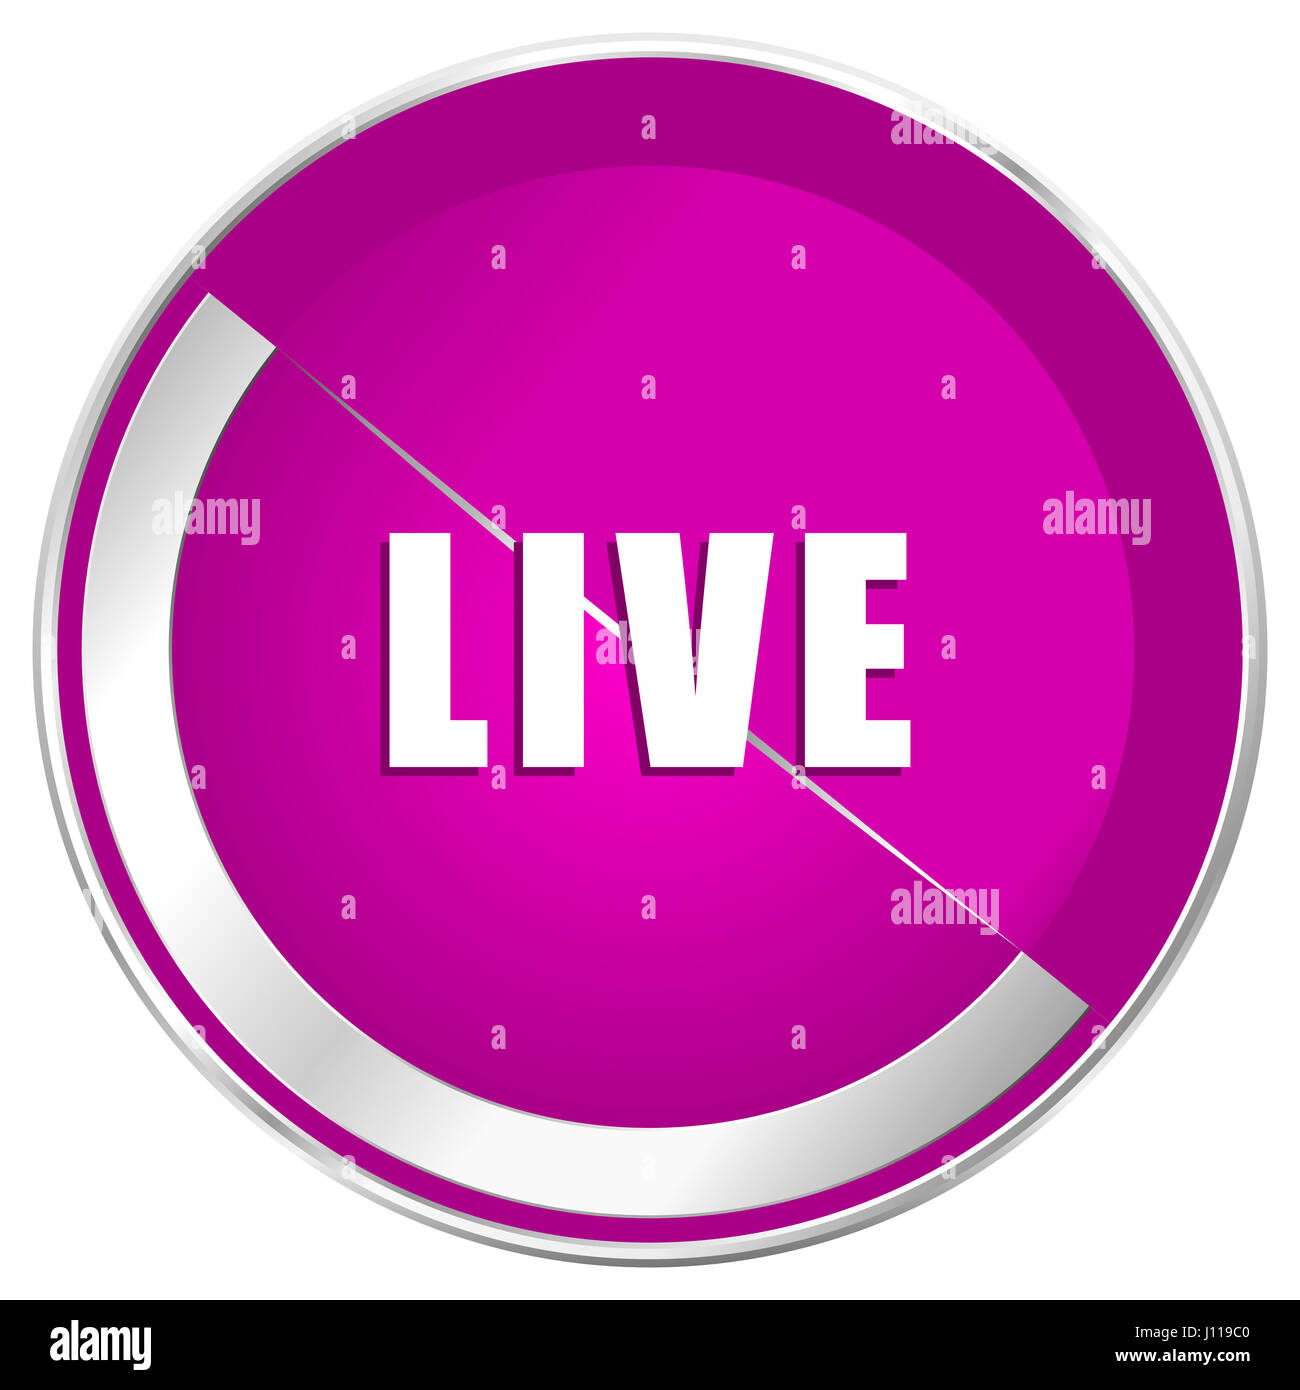 Live web design violet silver metallic border internet icon. - Stock Image